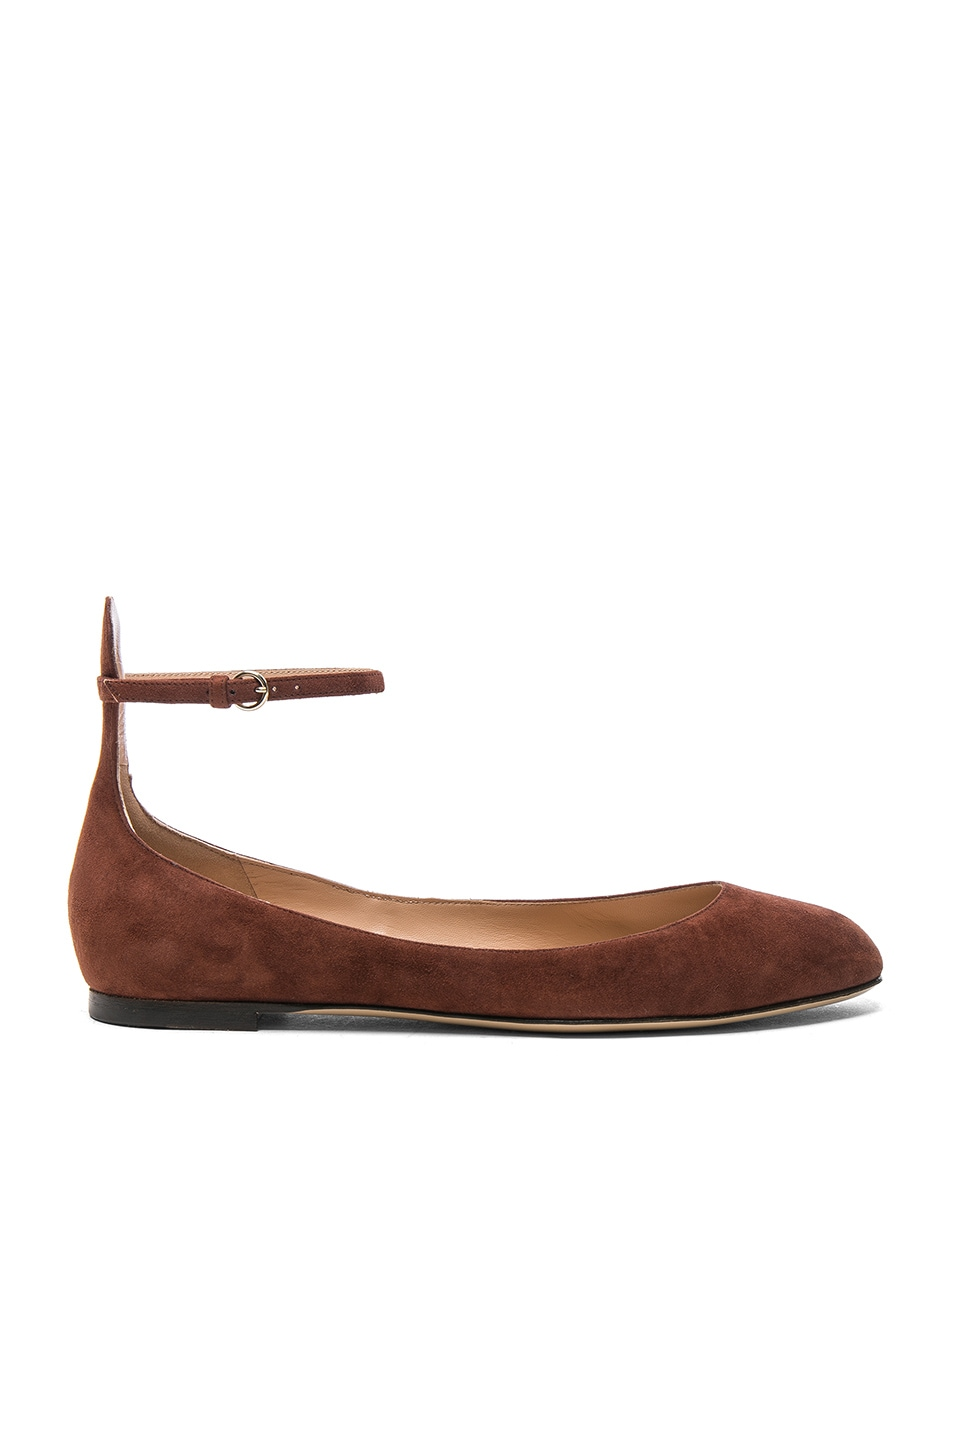 Image 1 of Valentino Suede Tan-Go Flats in Light Brown